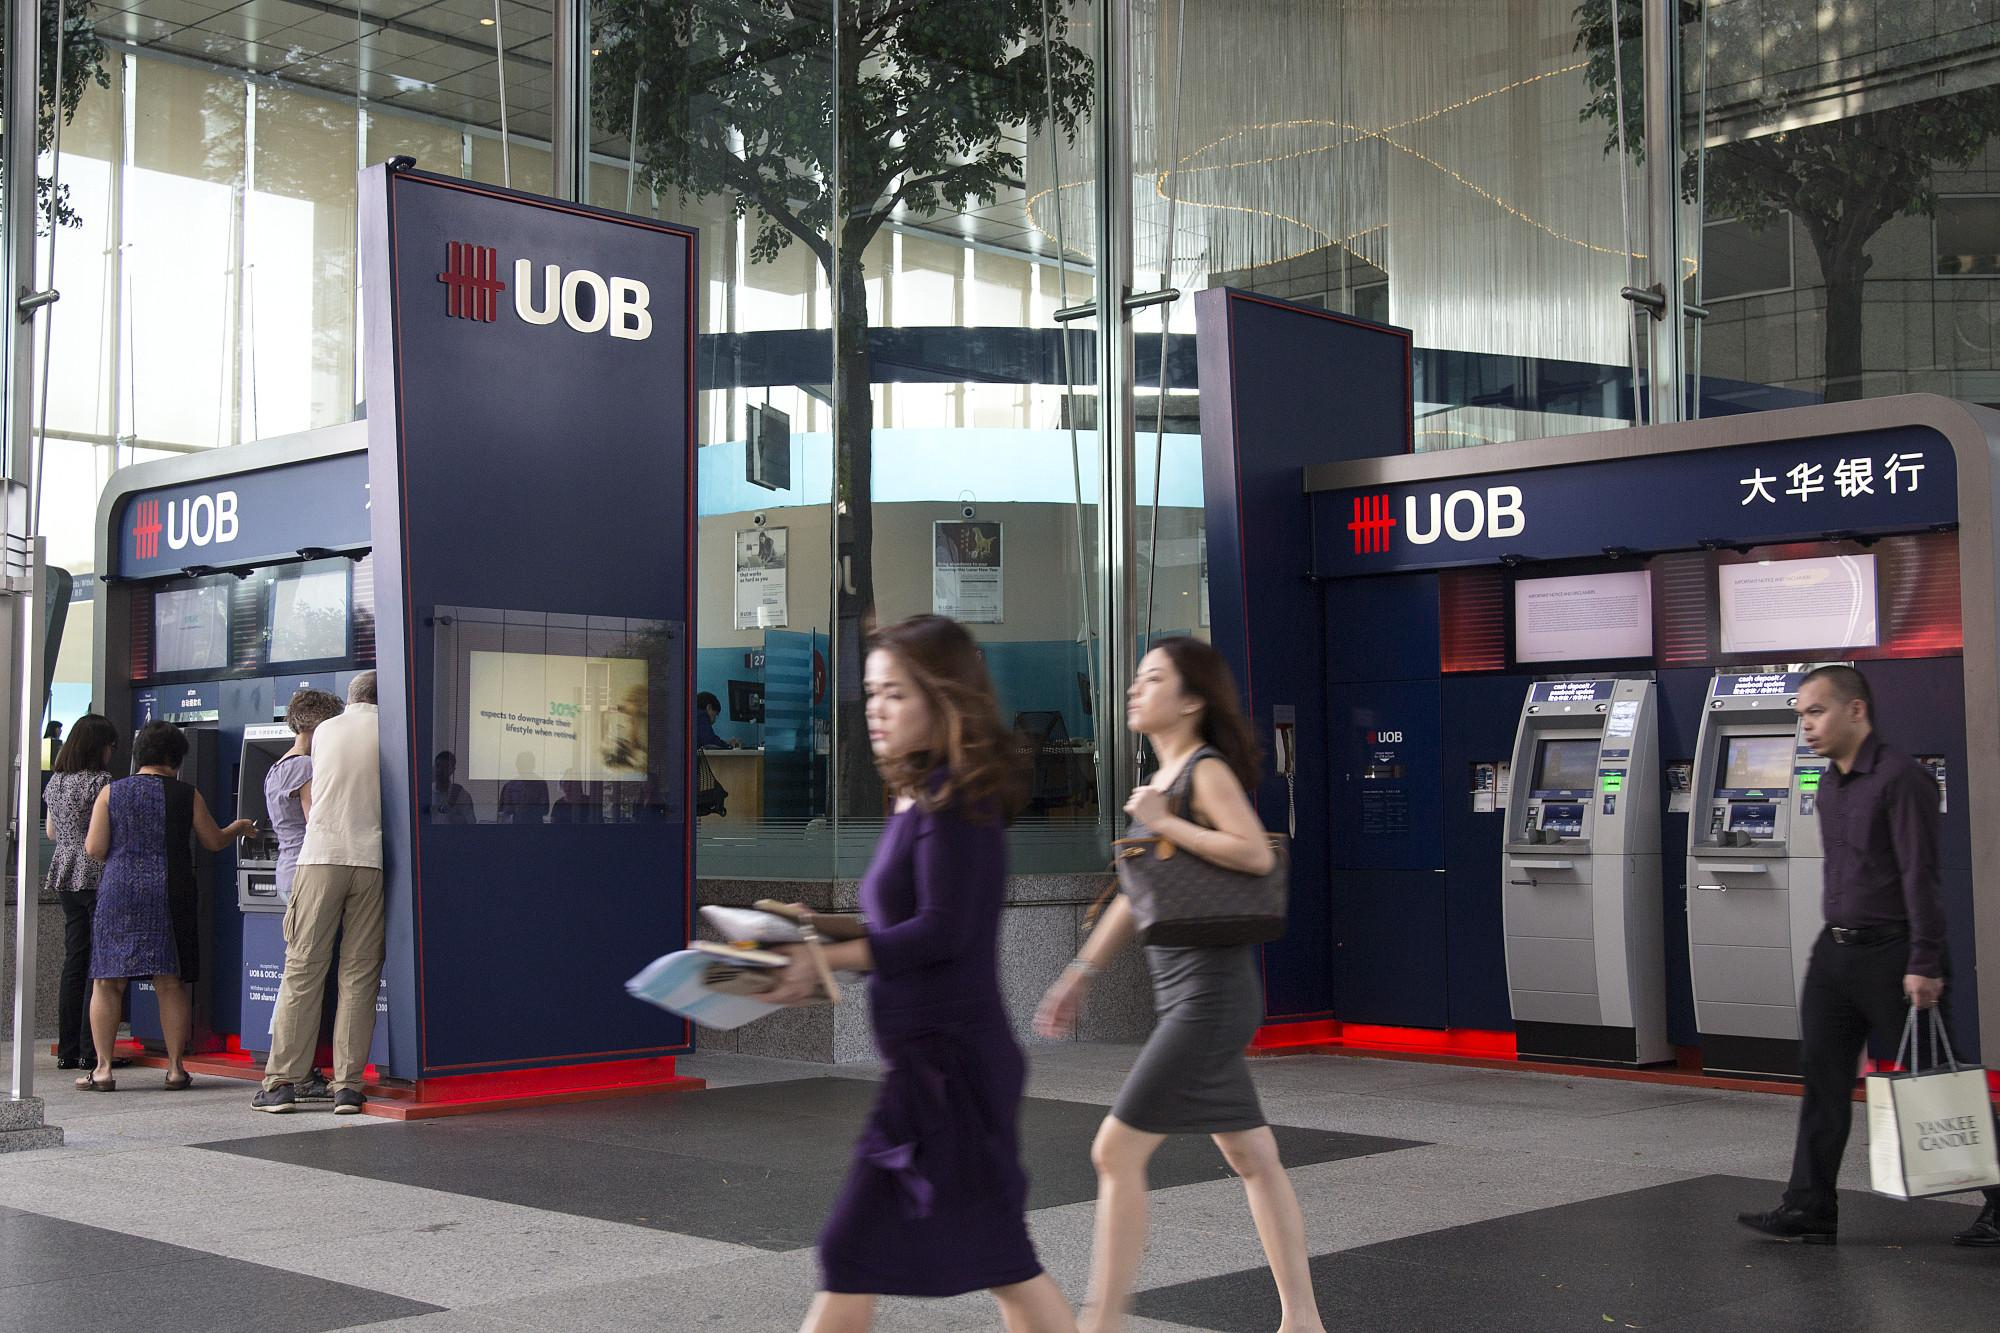 UOB launches 'high street' branch to target half a million emerging affluent customers in Singapore | IG EN